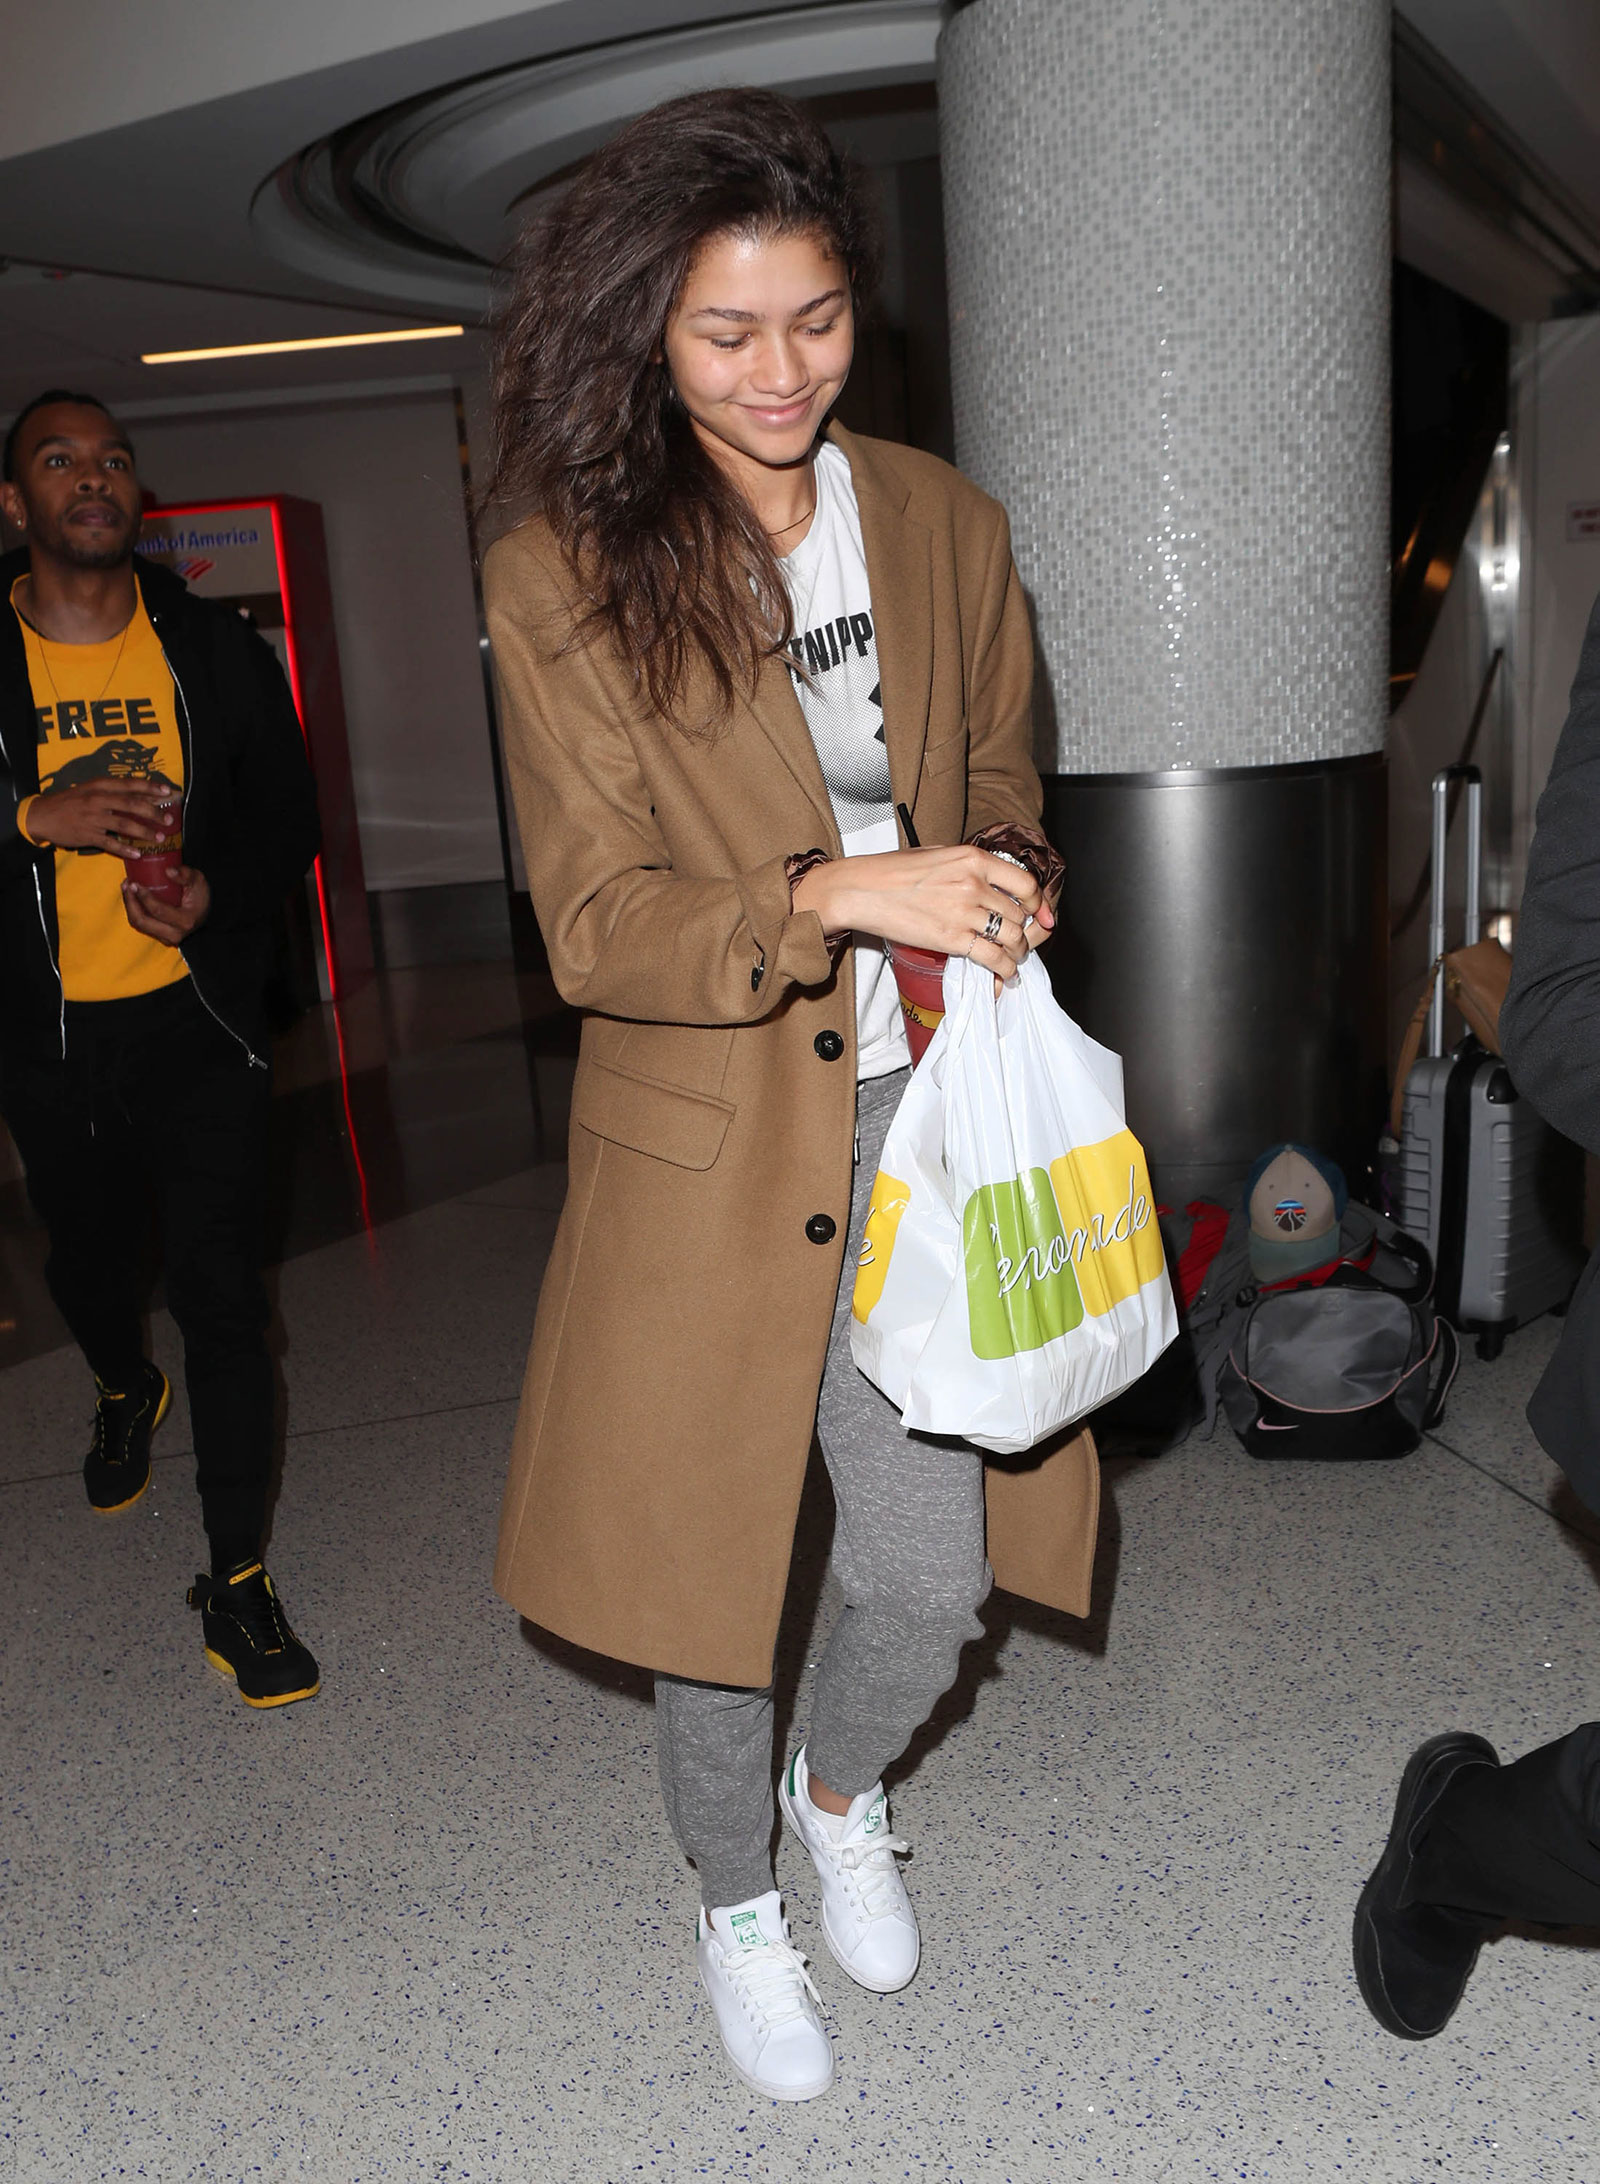 Zendaya wears a camel coat with a Free the Nipple t-shirt, gray joggers and Stan Smith sneakers.